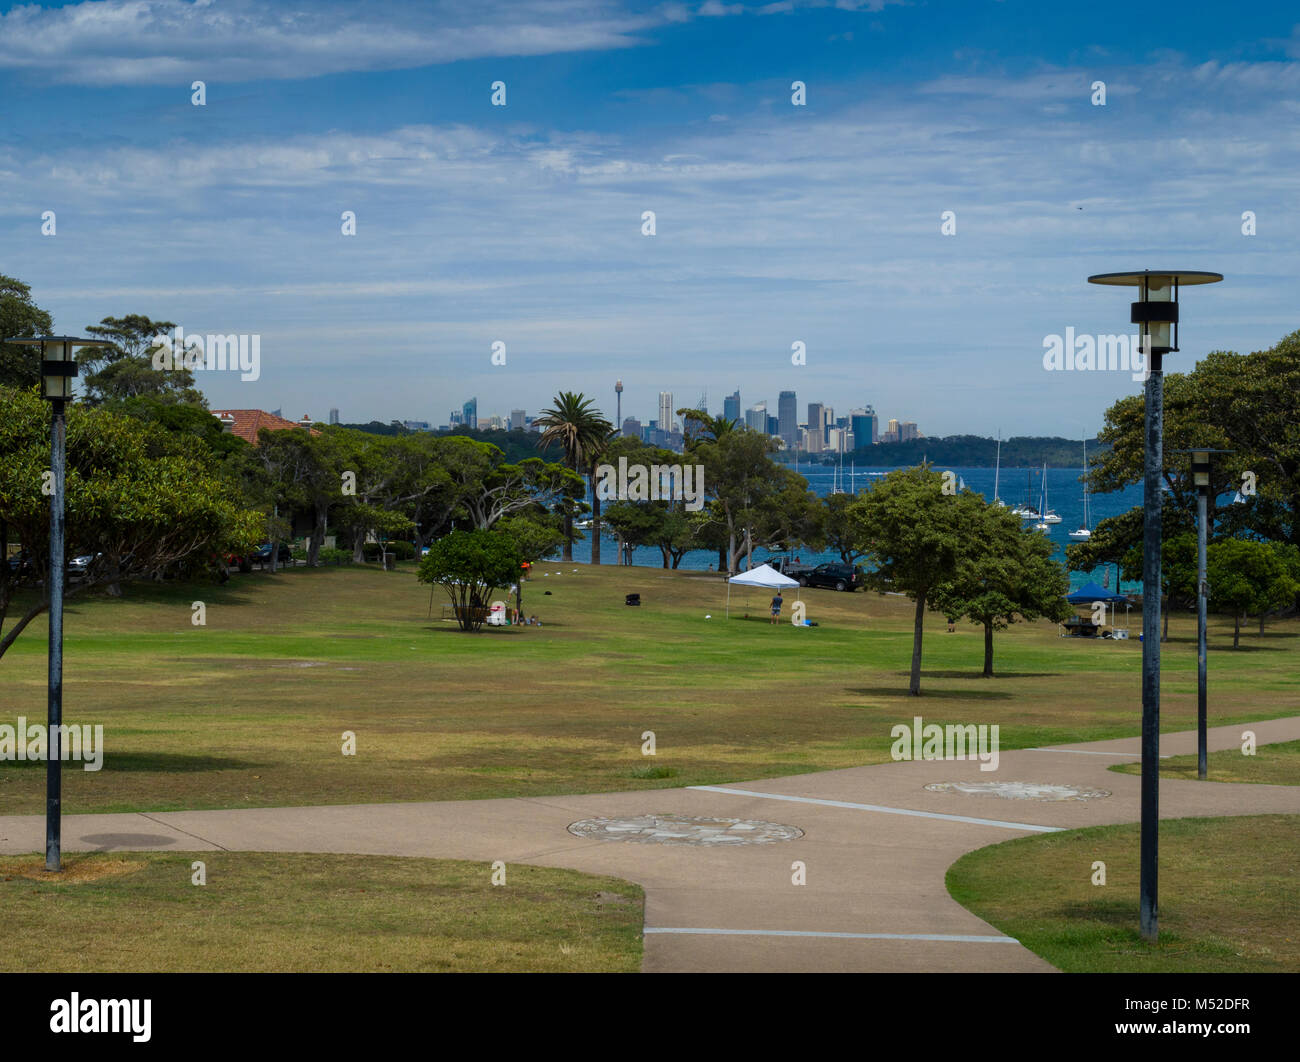 Views of Sydney Harbour and central business district from Robertson Park, Watsons Bay, New South Wales, Australia - Stock Image